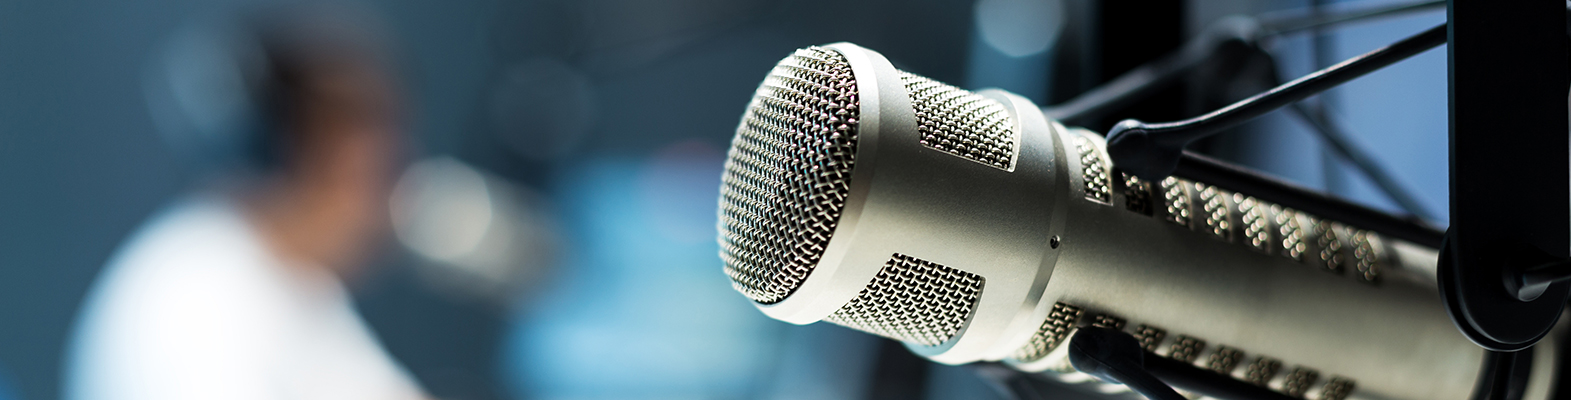 microphone with guy in radio station blurred in background